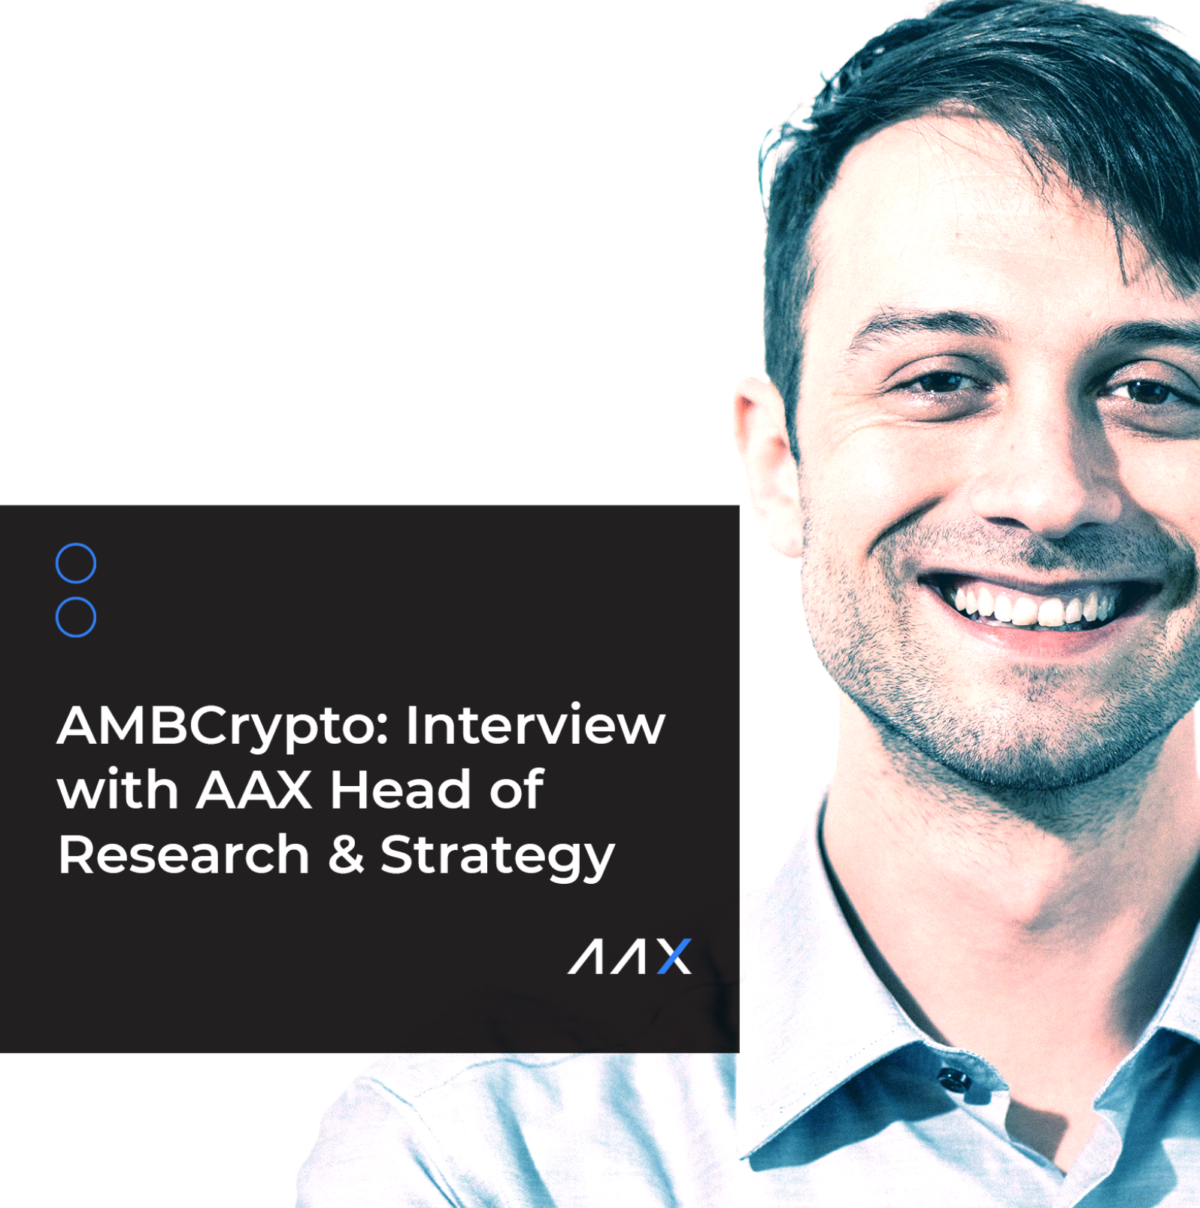 AMBCrypto: Interview with AAX Head of Research & Strategy